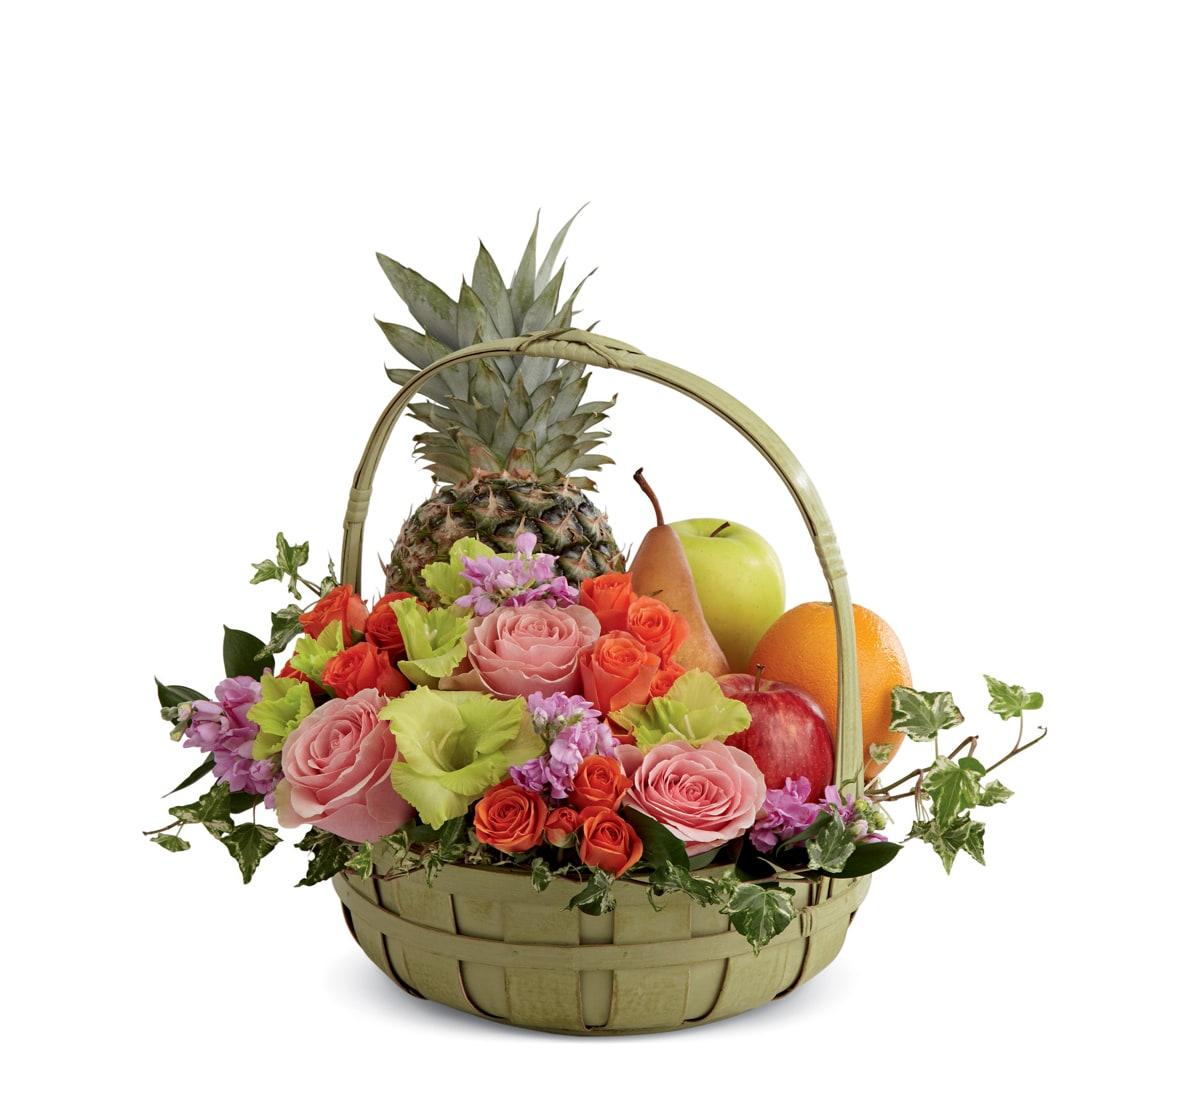 The FTD® Rest in Peace™ Sympathy Basket